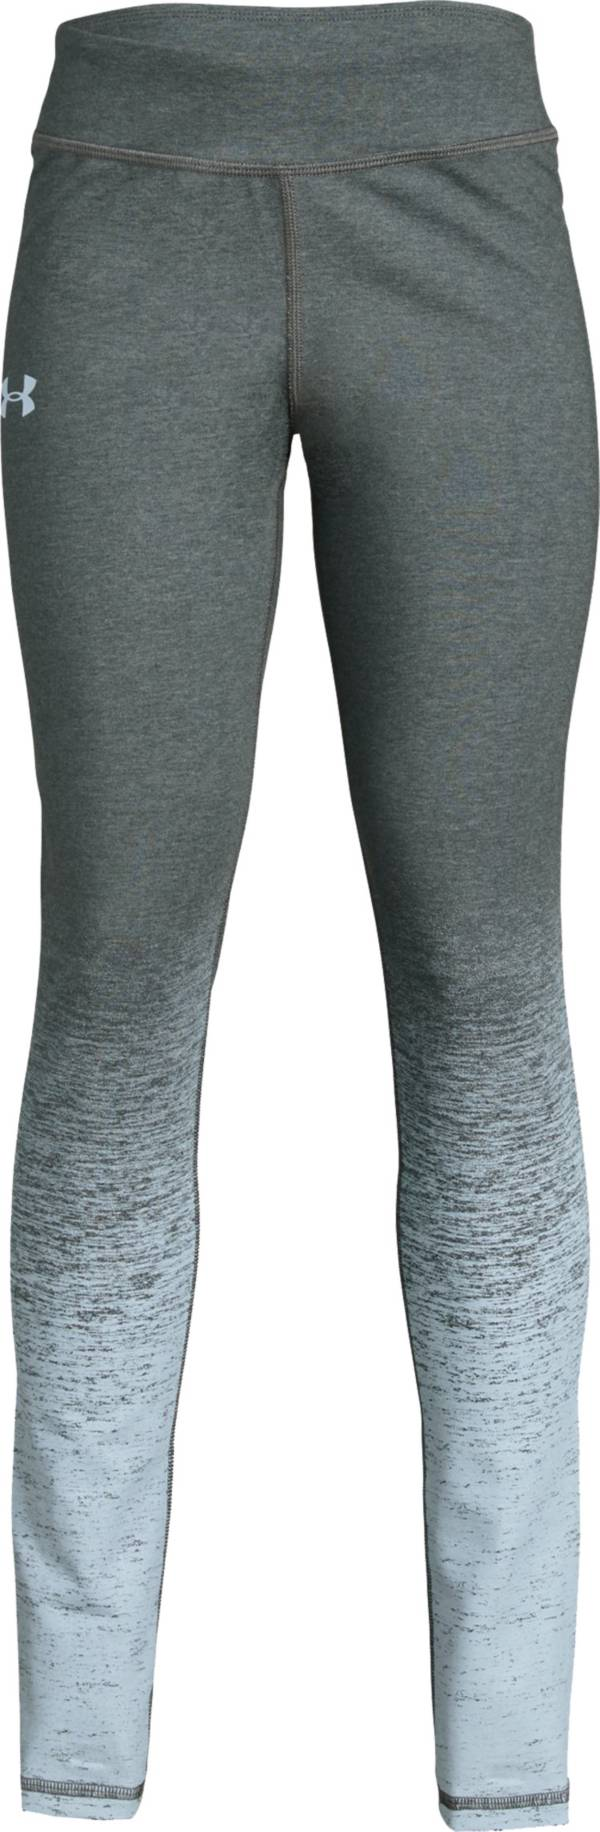 Under Armour Girls' Finale Gradient Leggings product image